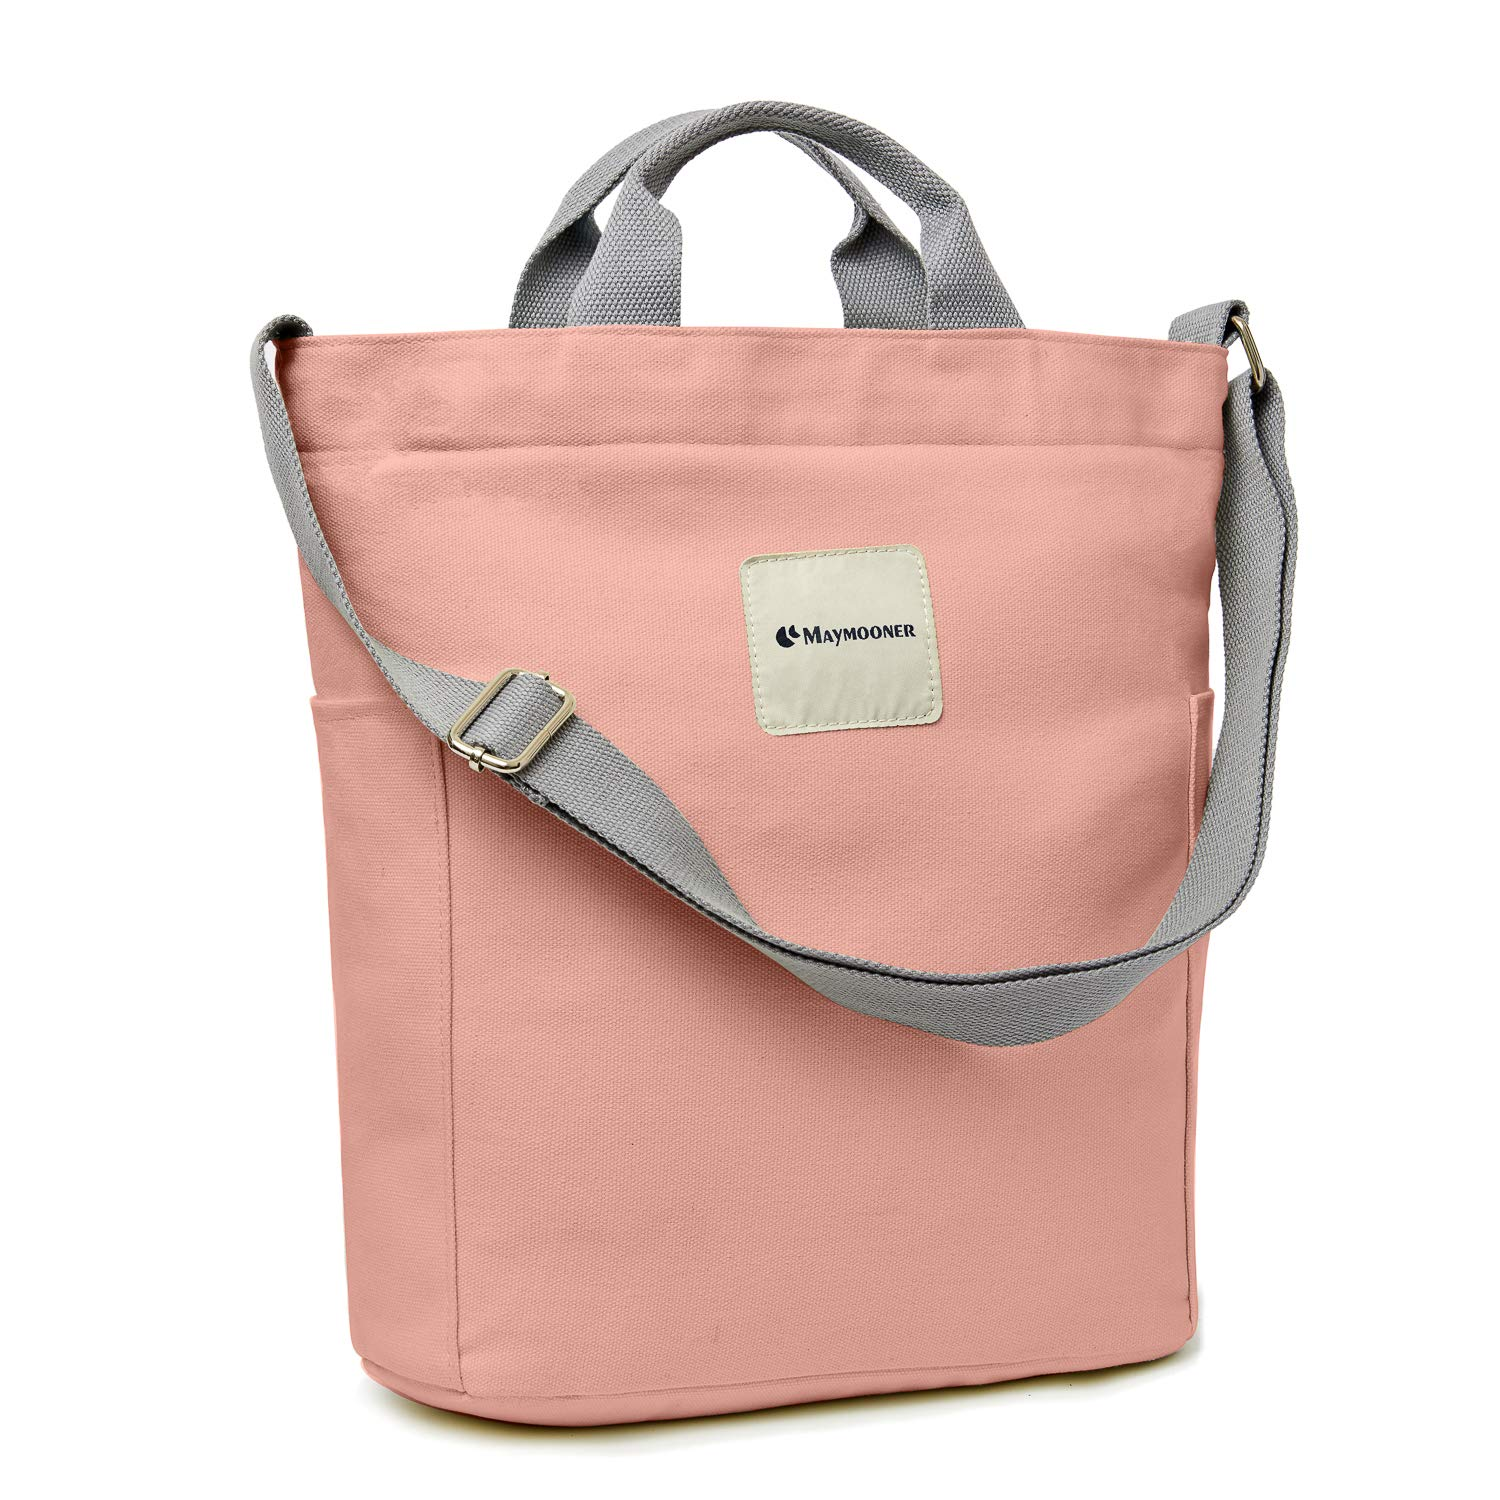 Canvas Tote Bag with Zipper and Pocket Casual Crossbody School Planner Hobo Bag for Women